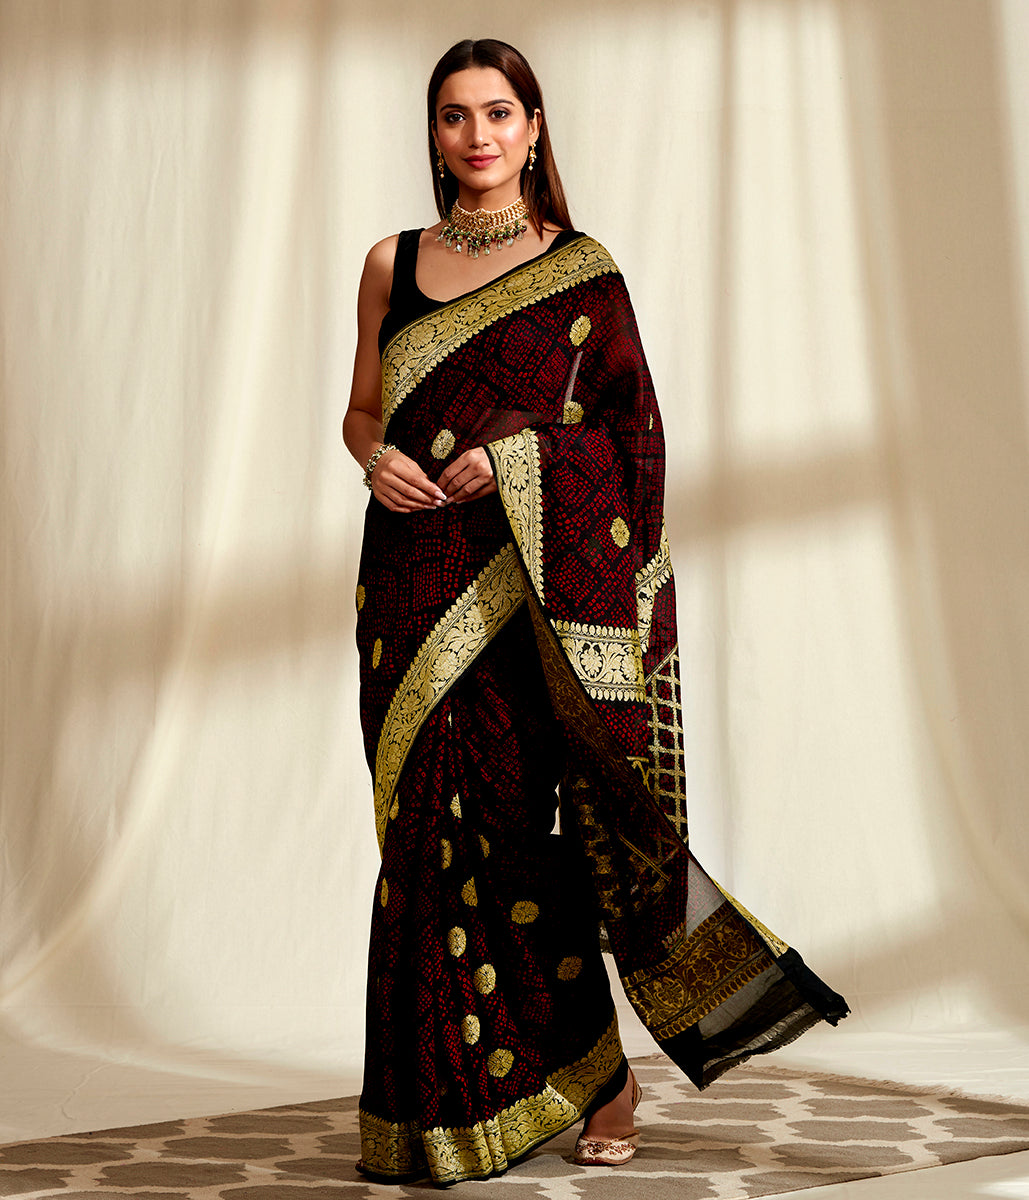 Handwoven Banarasi Bandhej Saree in Black with Gold Zari Kadhwa Weave